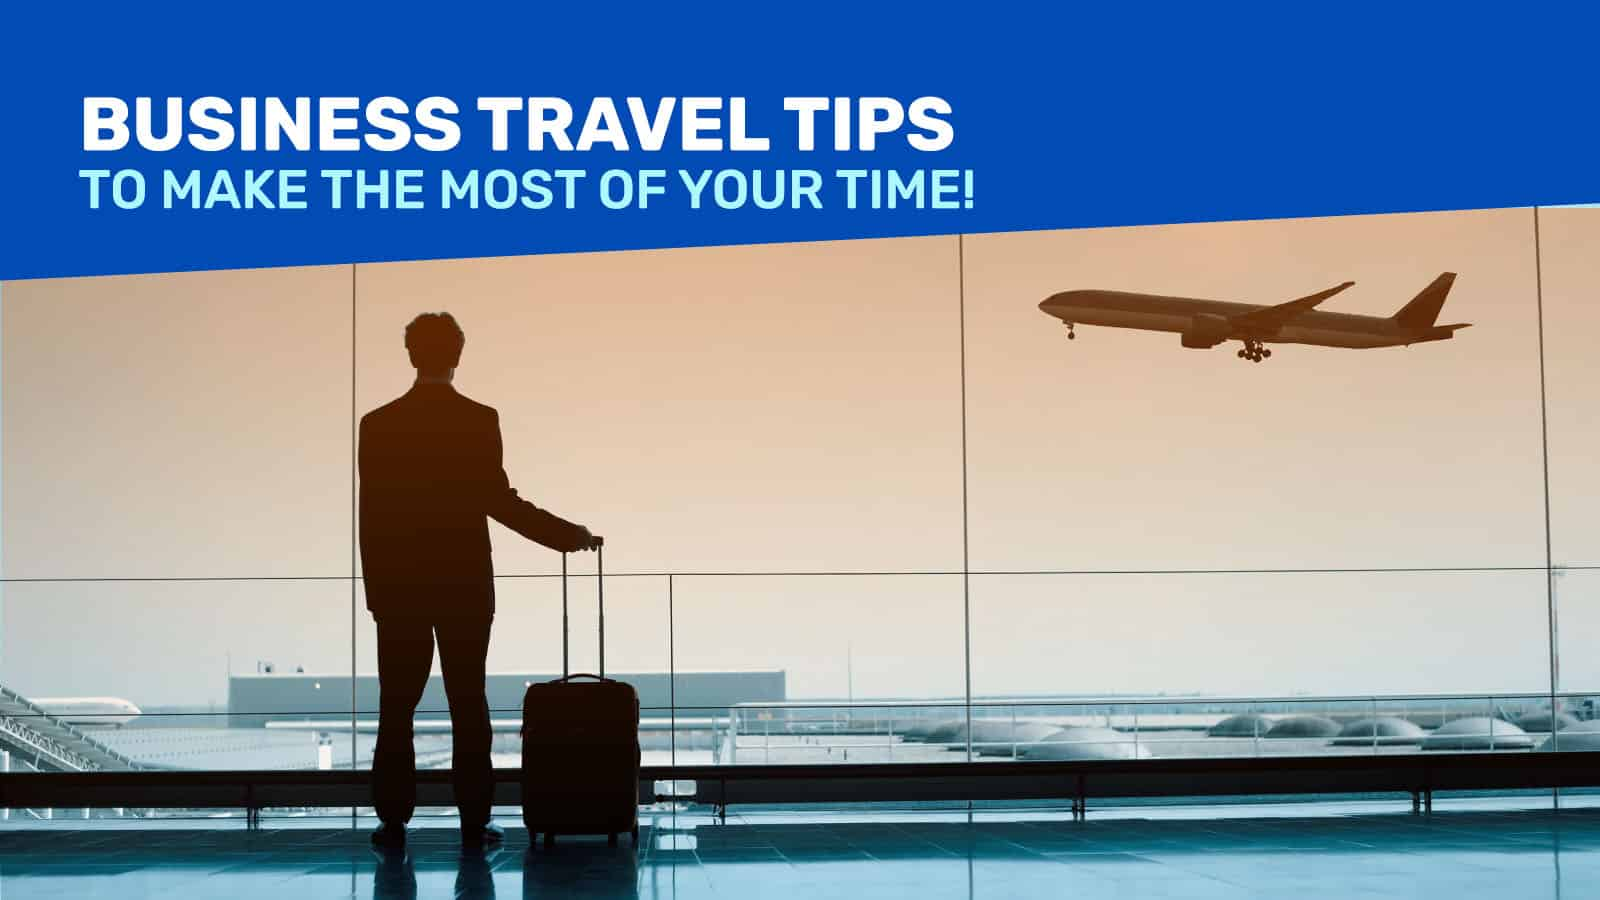 BUSINESS TRAVEL: 9 Tips to Make the Most of Your Business Trips!